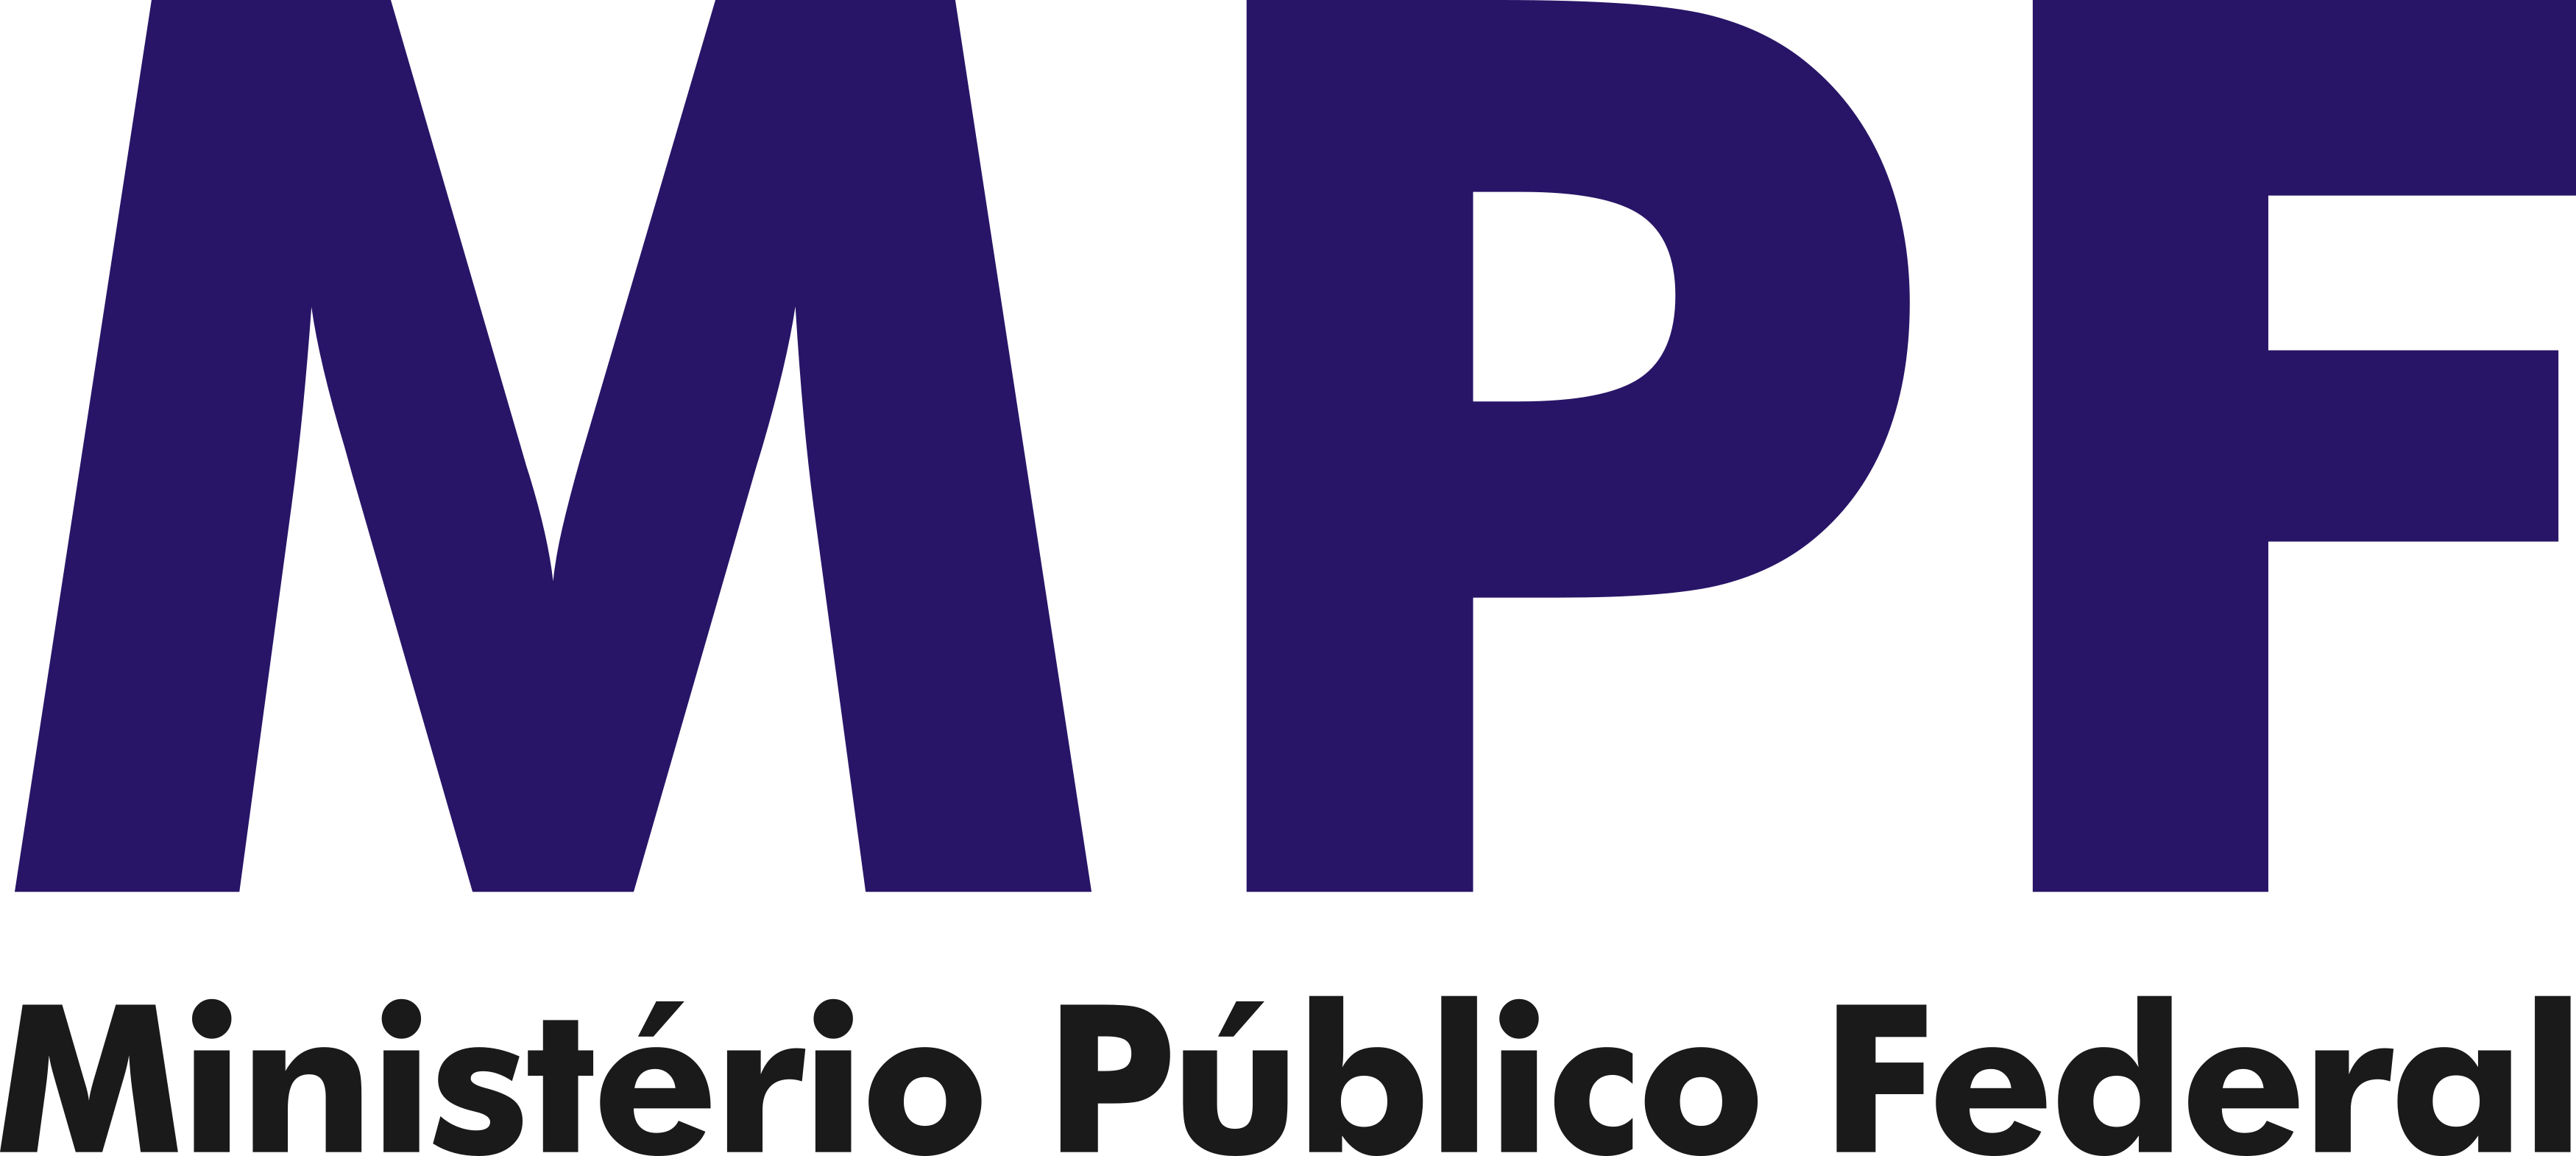 mpf-logo-ministerio-publico-federal.png